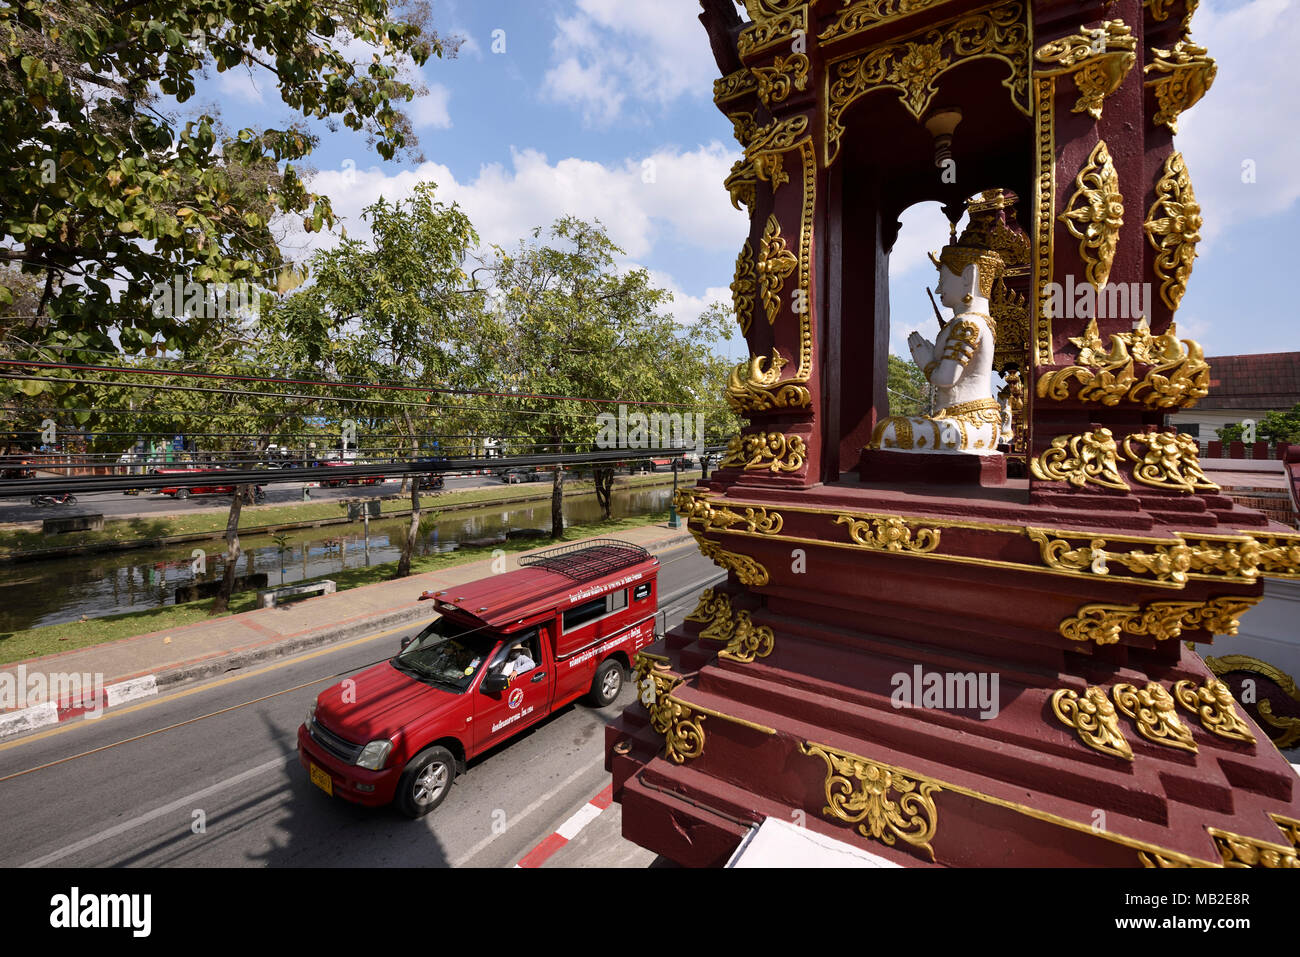 red songthaew taxi driving by a Buddhist temple Wat, Chiang Mai, Thailand - Stock Image